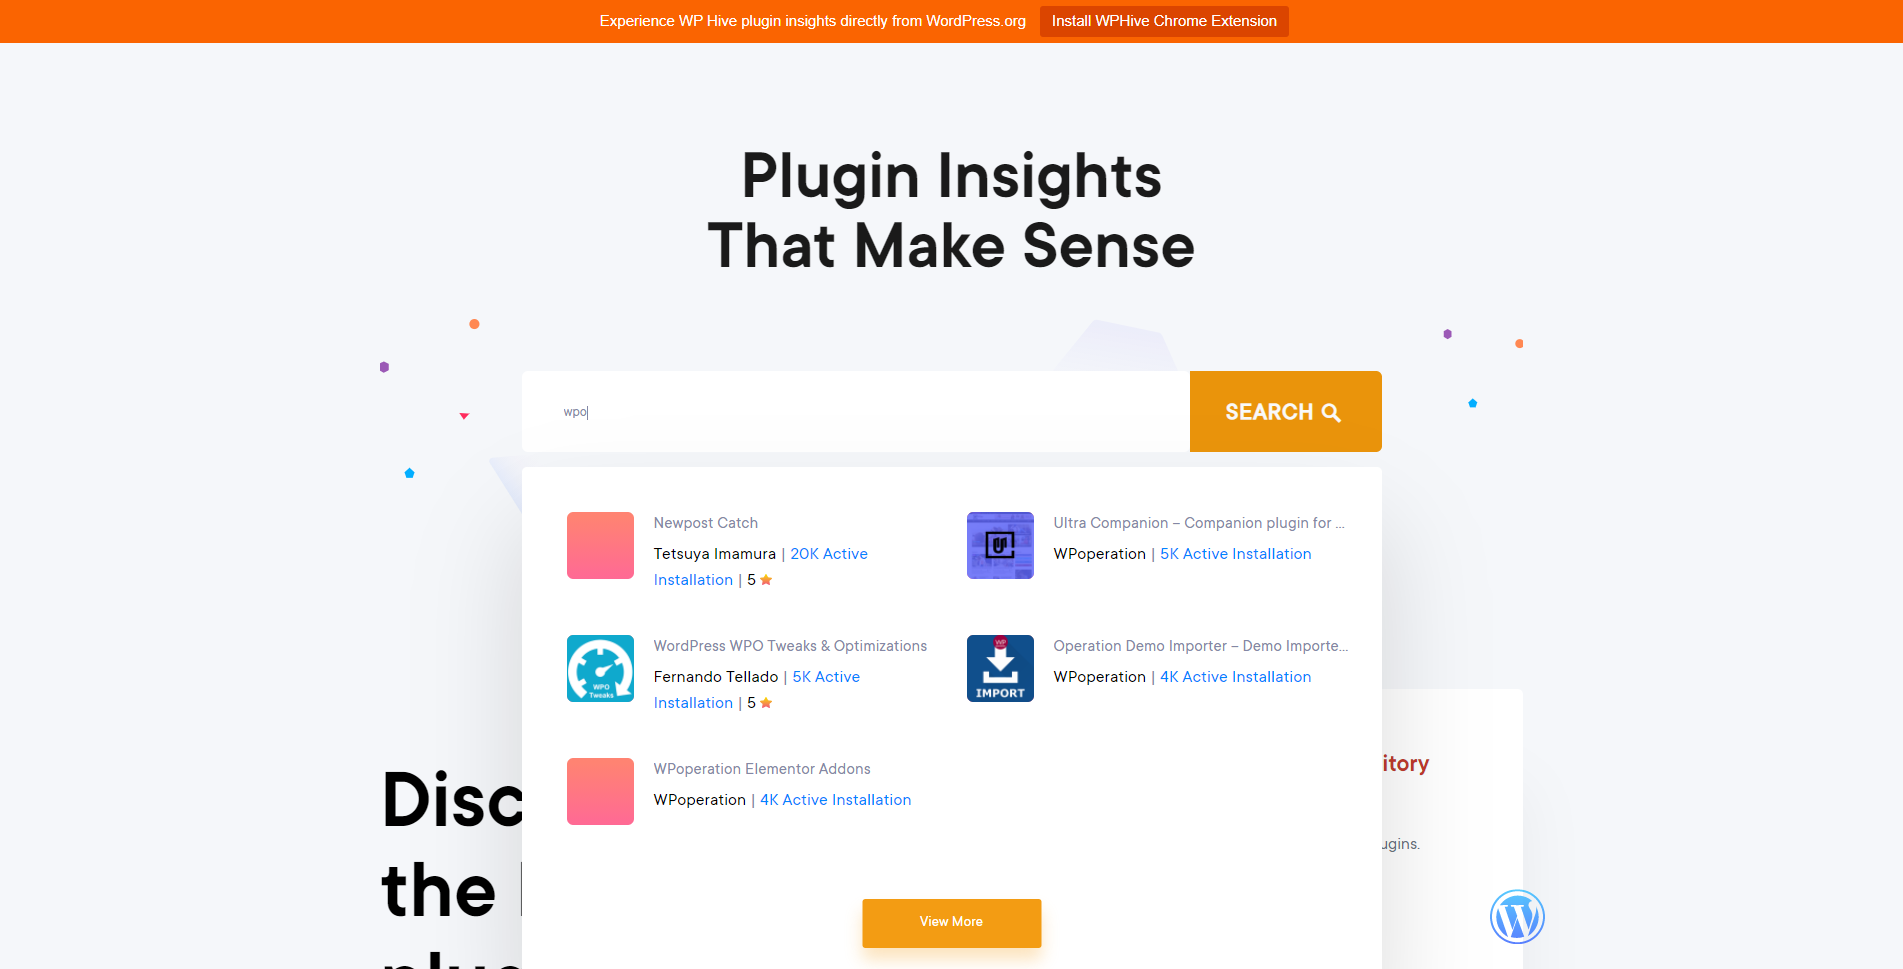 wp hive plugin search engine for example